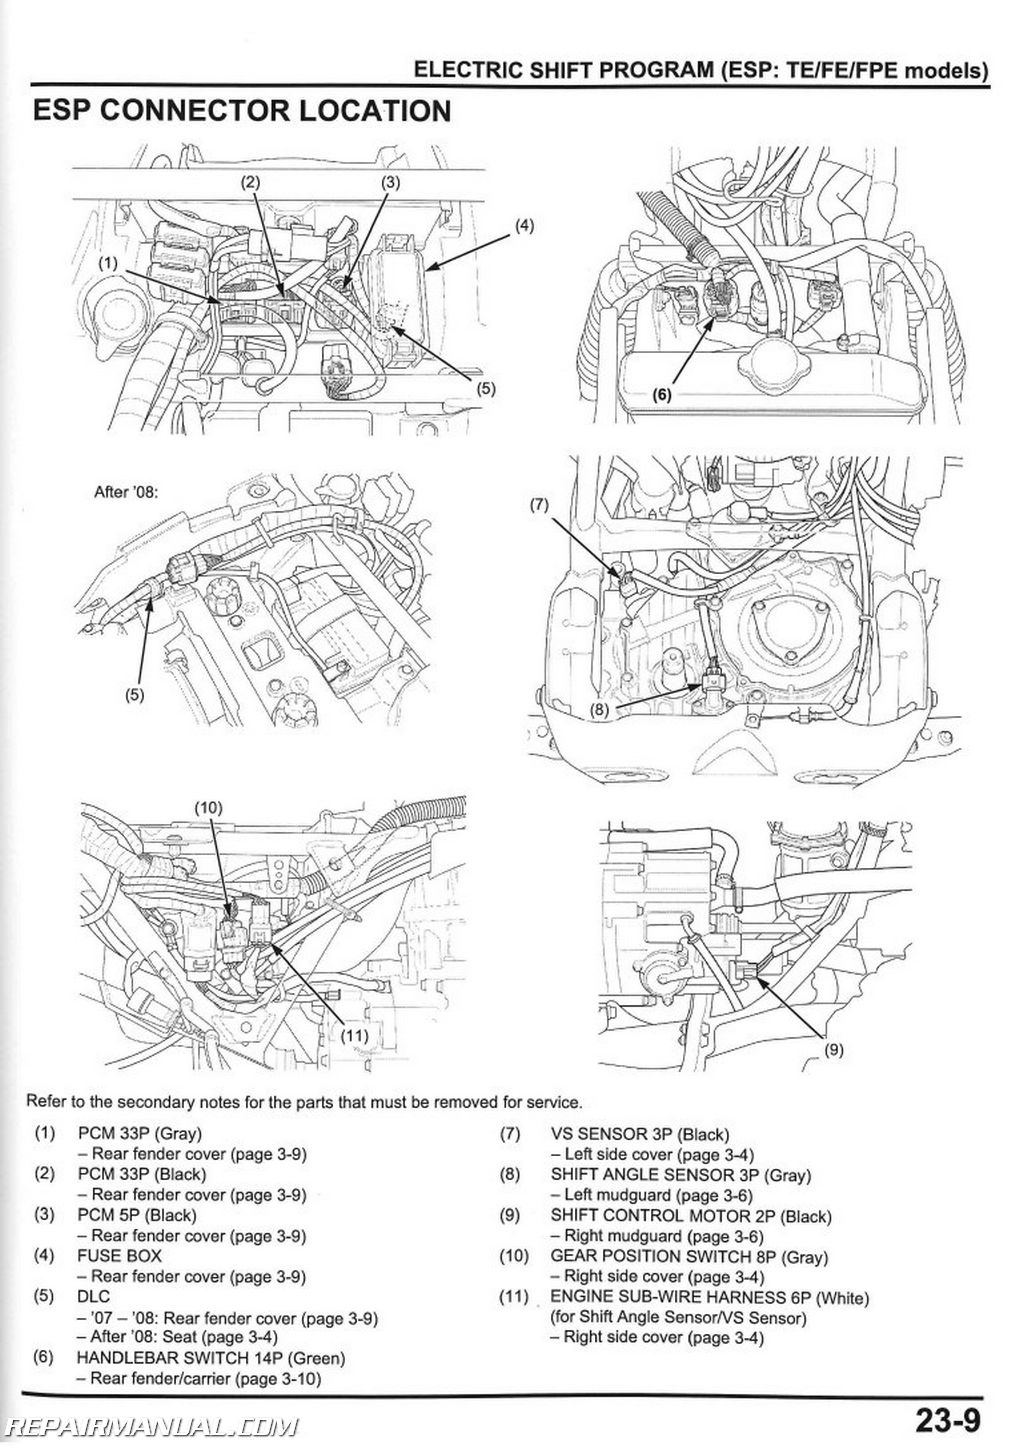 honda rancher 350 carburetor diagram muscles of the lower back and buttocks es 420 engine get free image about